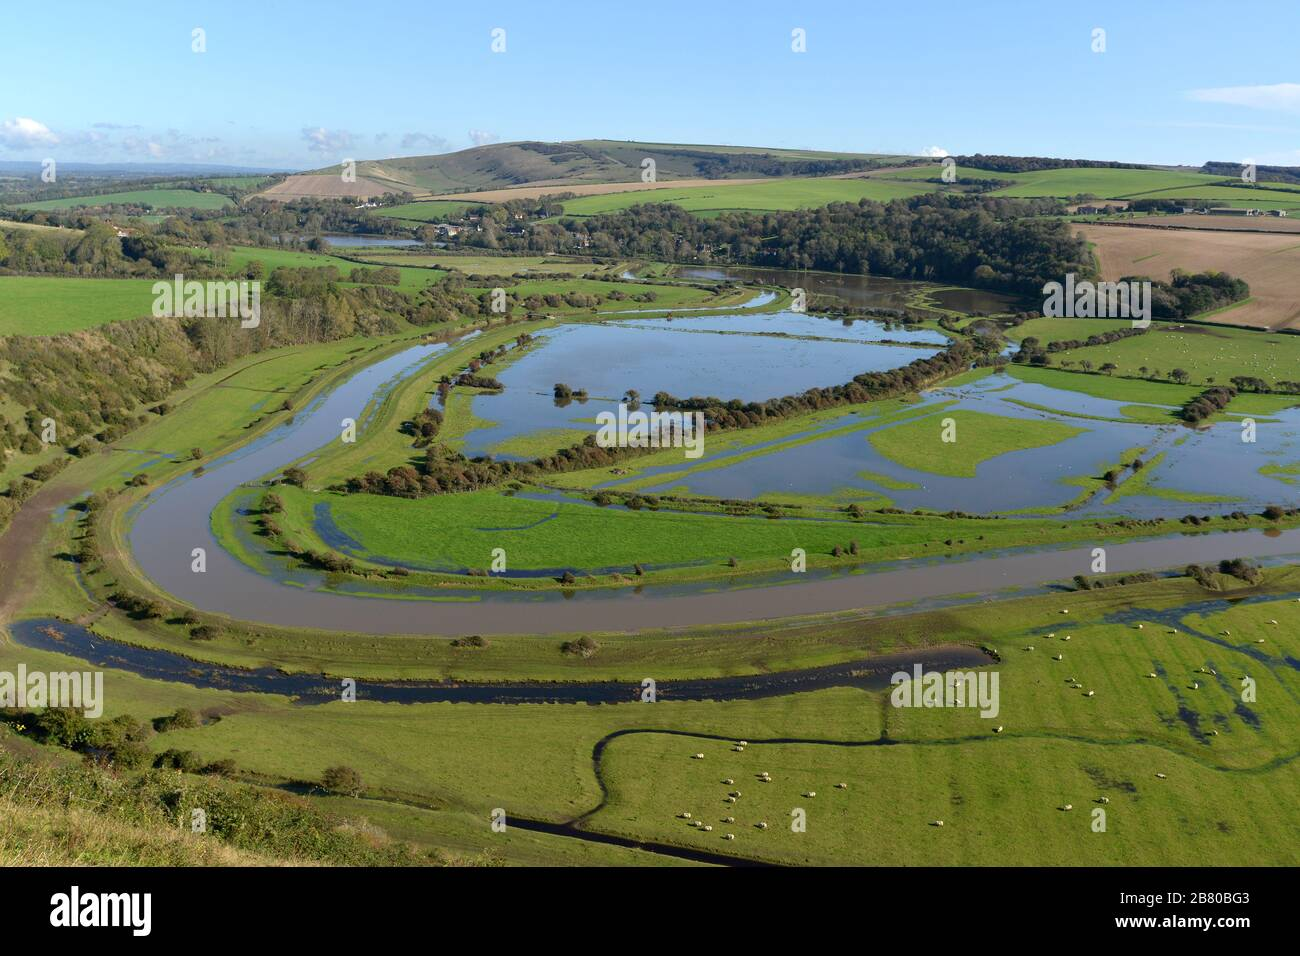 Flood plane of the Cuckmere Valley in the South Downs National Park, East Sussex, UK Stock Photo